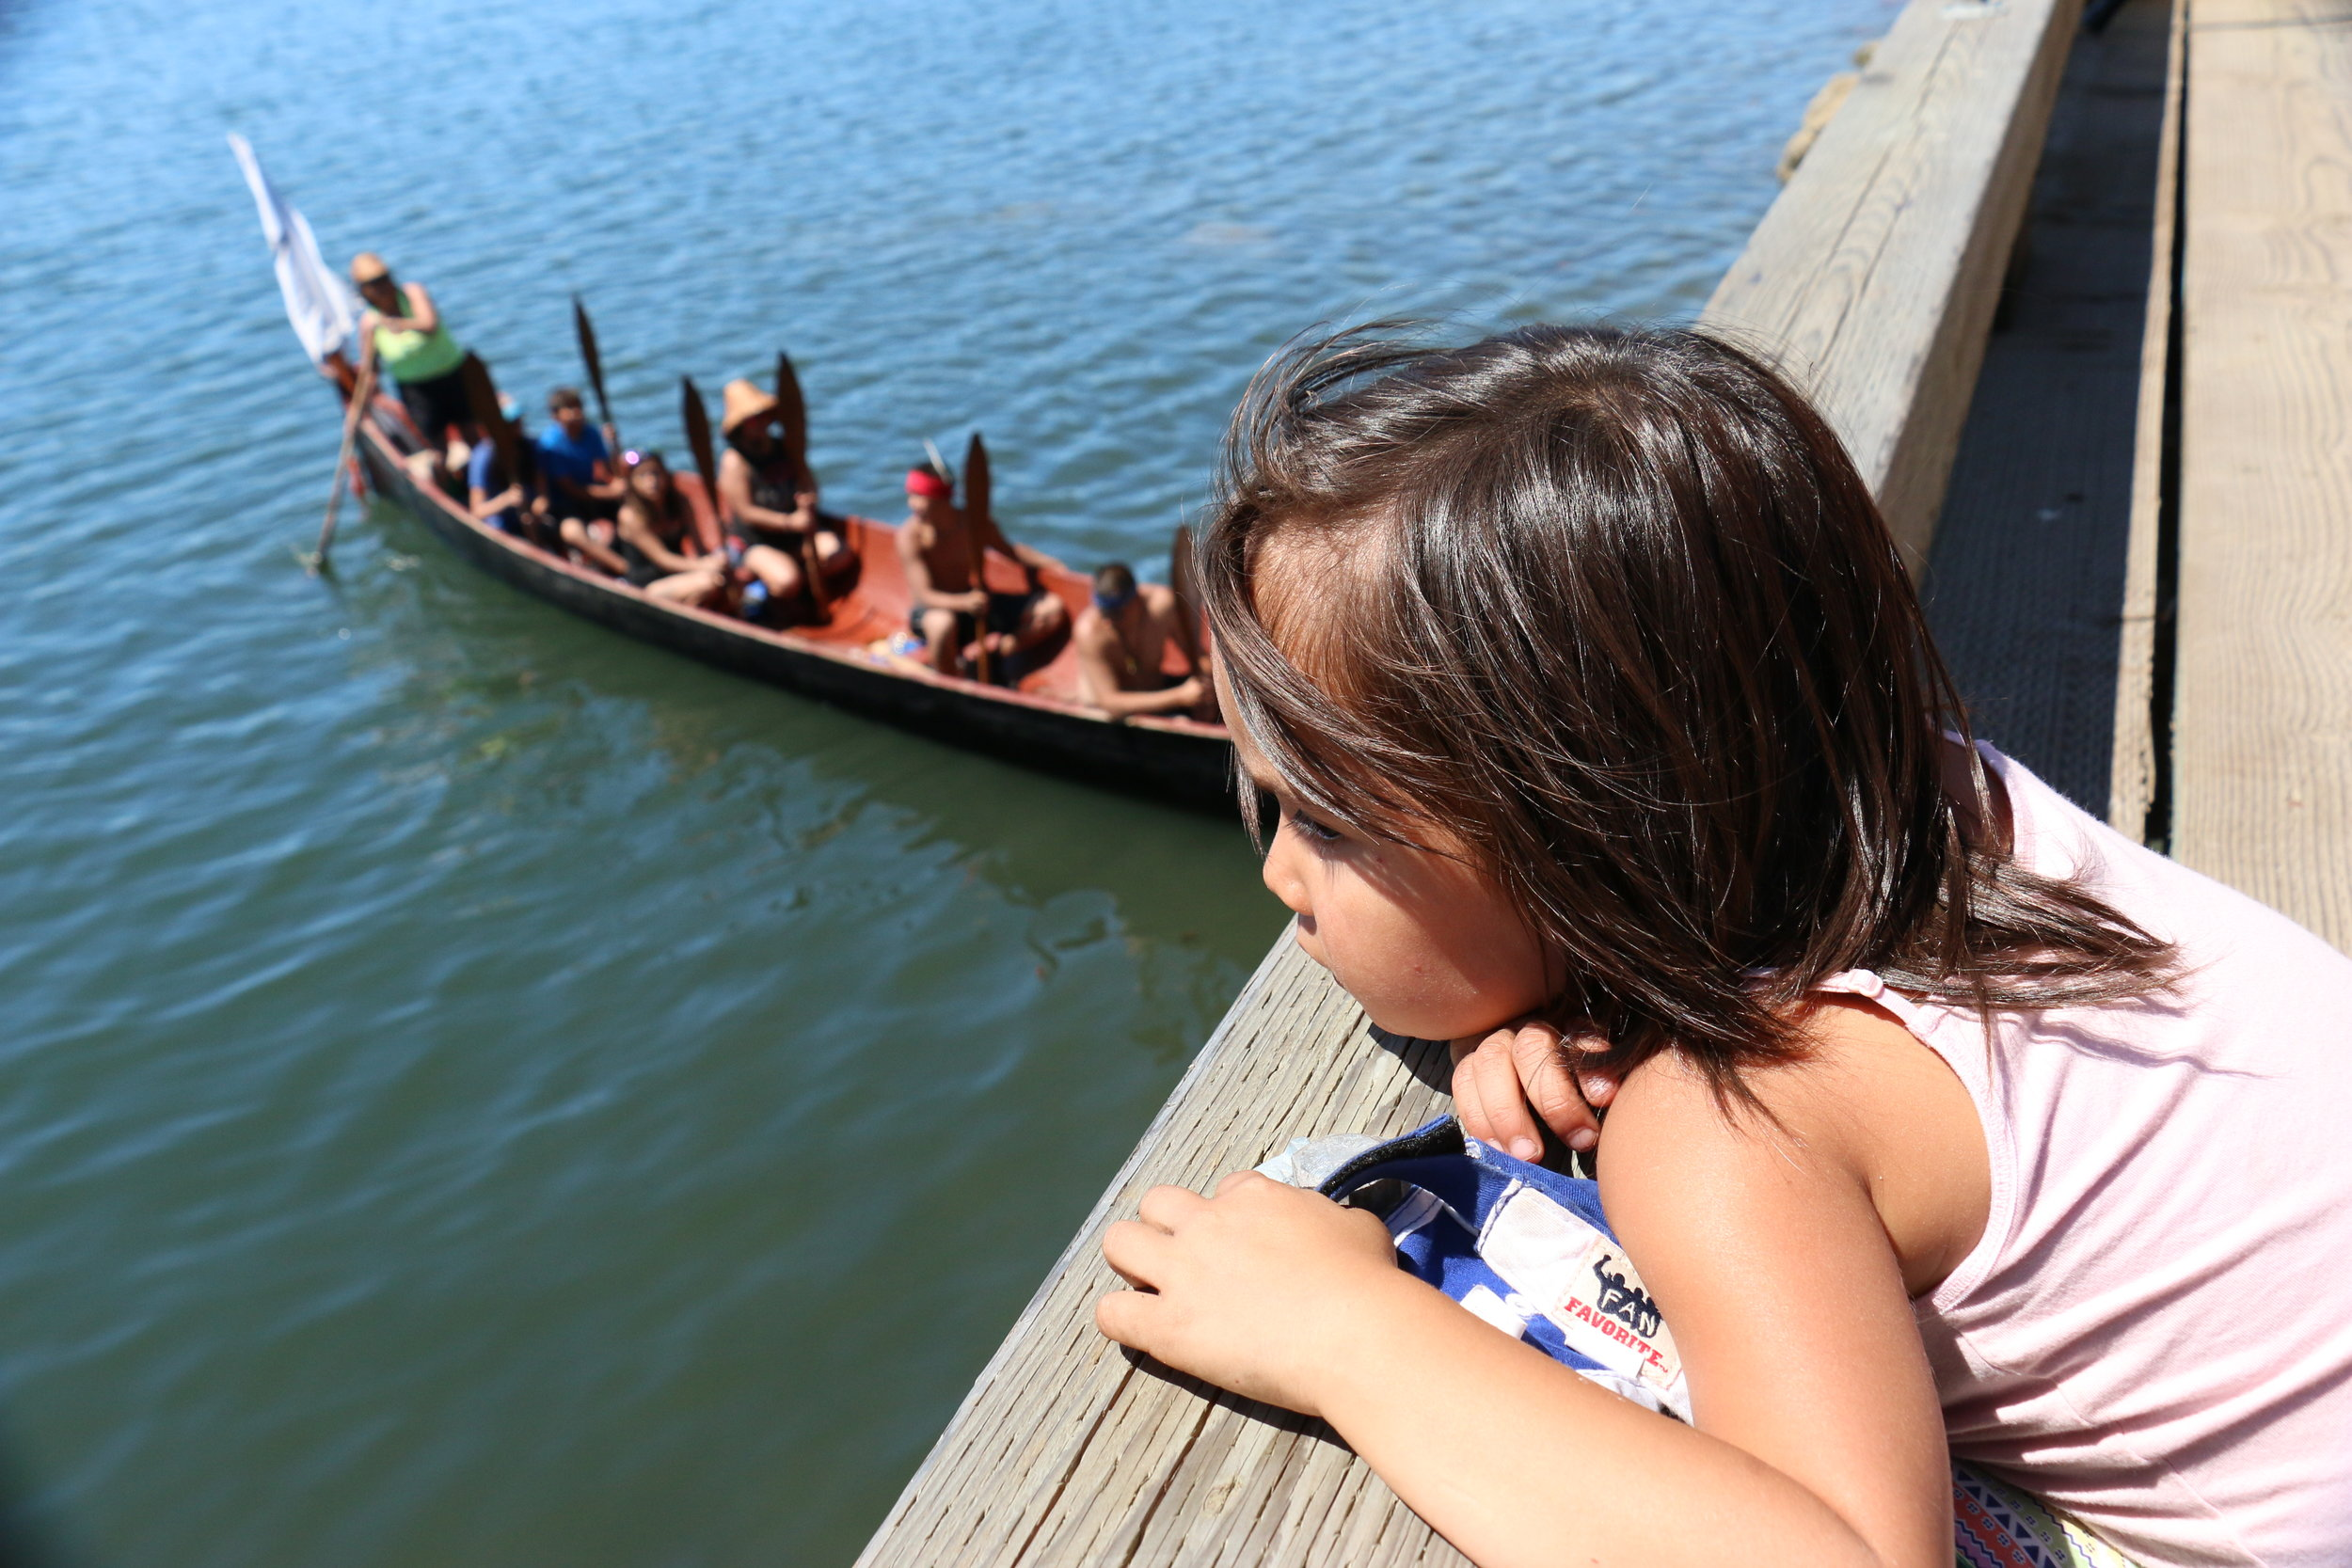 A young girl playing on the dock pauses to watch the canoes arrive in Esquimalt Harbour. (Julian Brave NoiseCat)